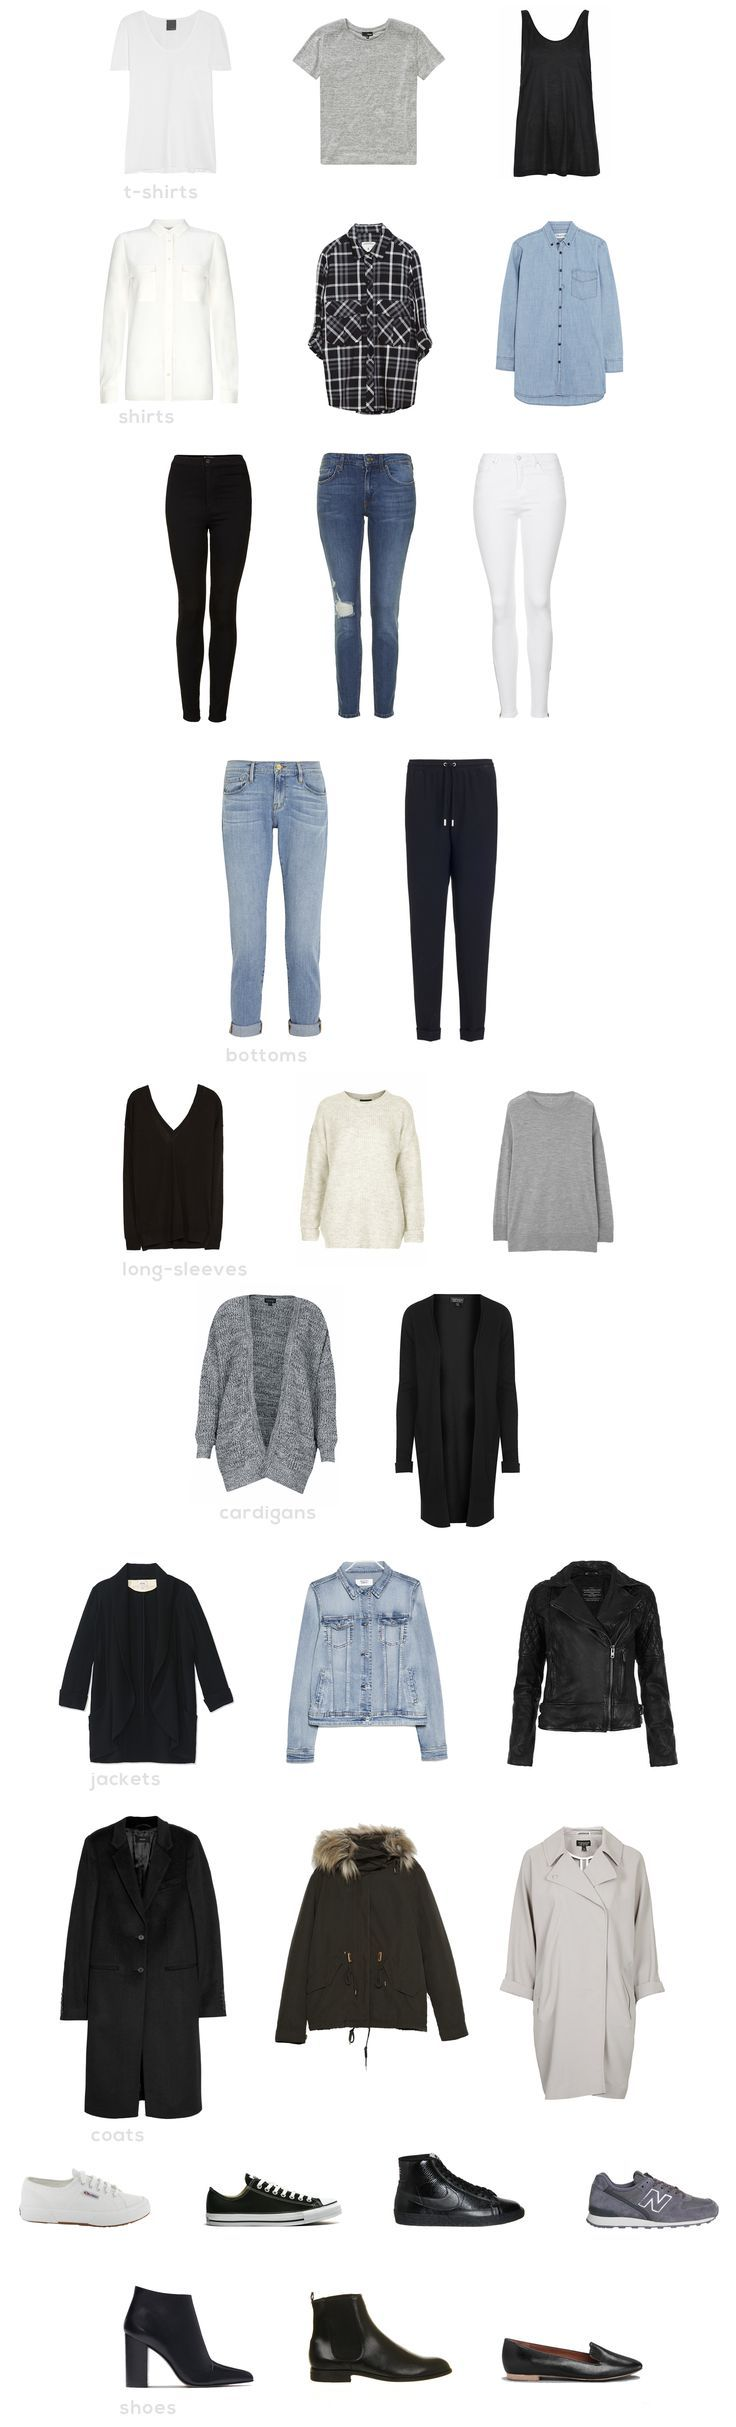 I'm minimizing my closet and building a capsule wardrobe from scratch, starting witha strong foundation of basics. I'm also following the 5-Piece French Wardrobe concept of only buying five new trend or statement pieces each season. Read the full serieshere. According to the Met Office, spring officially started on the 20th March – perfect timing …